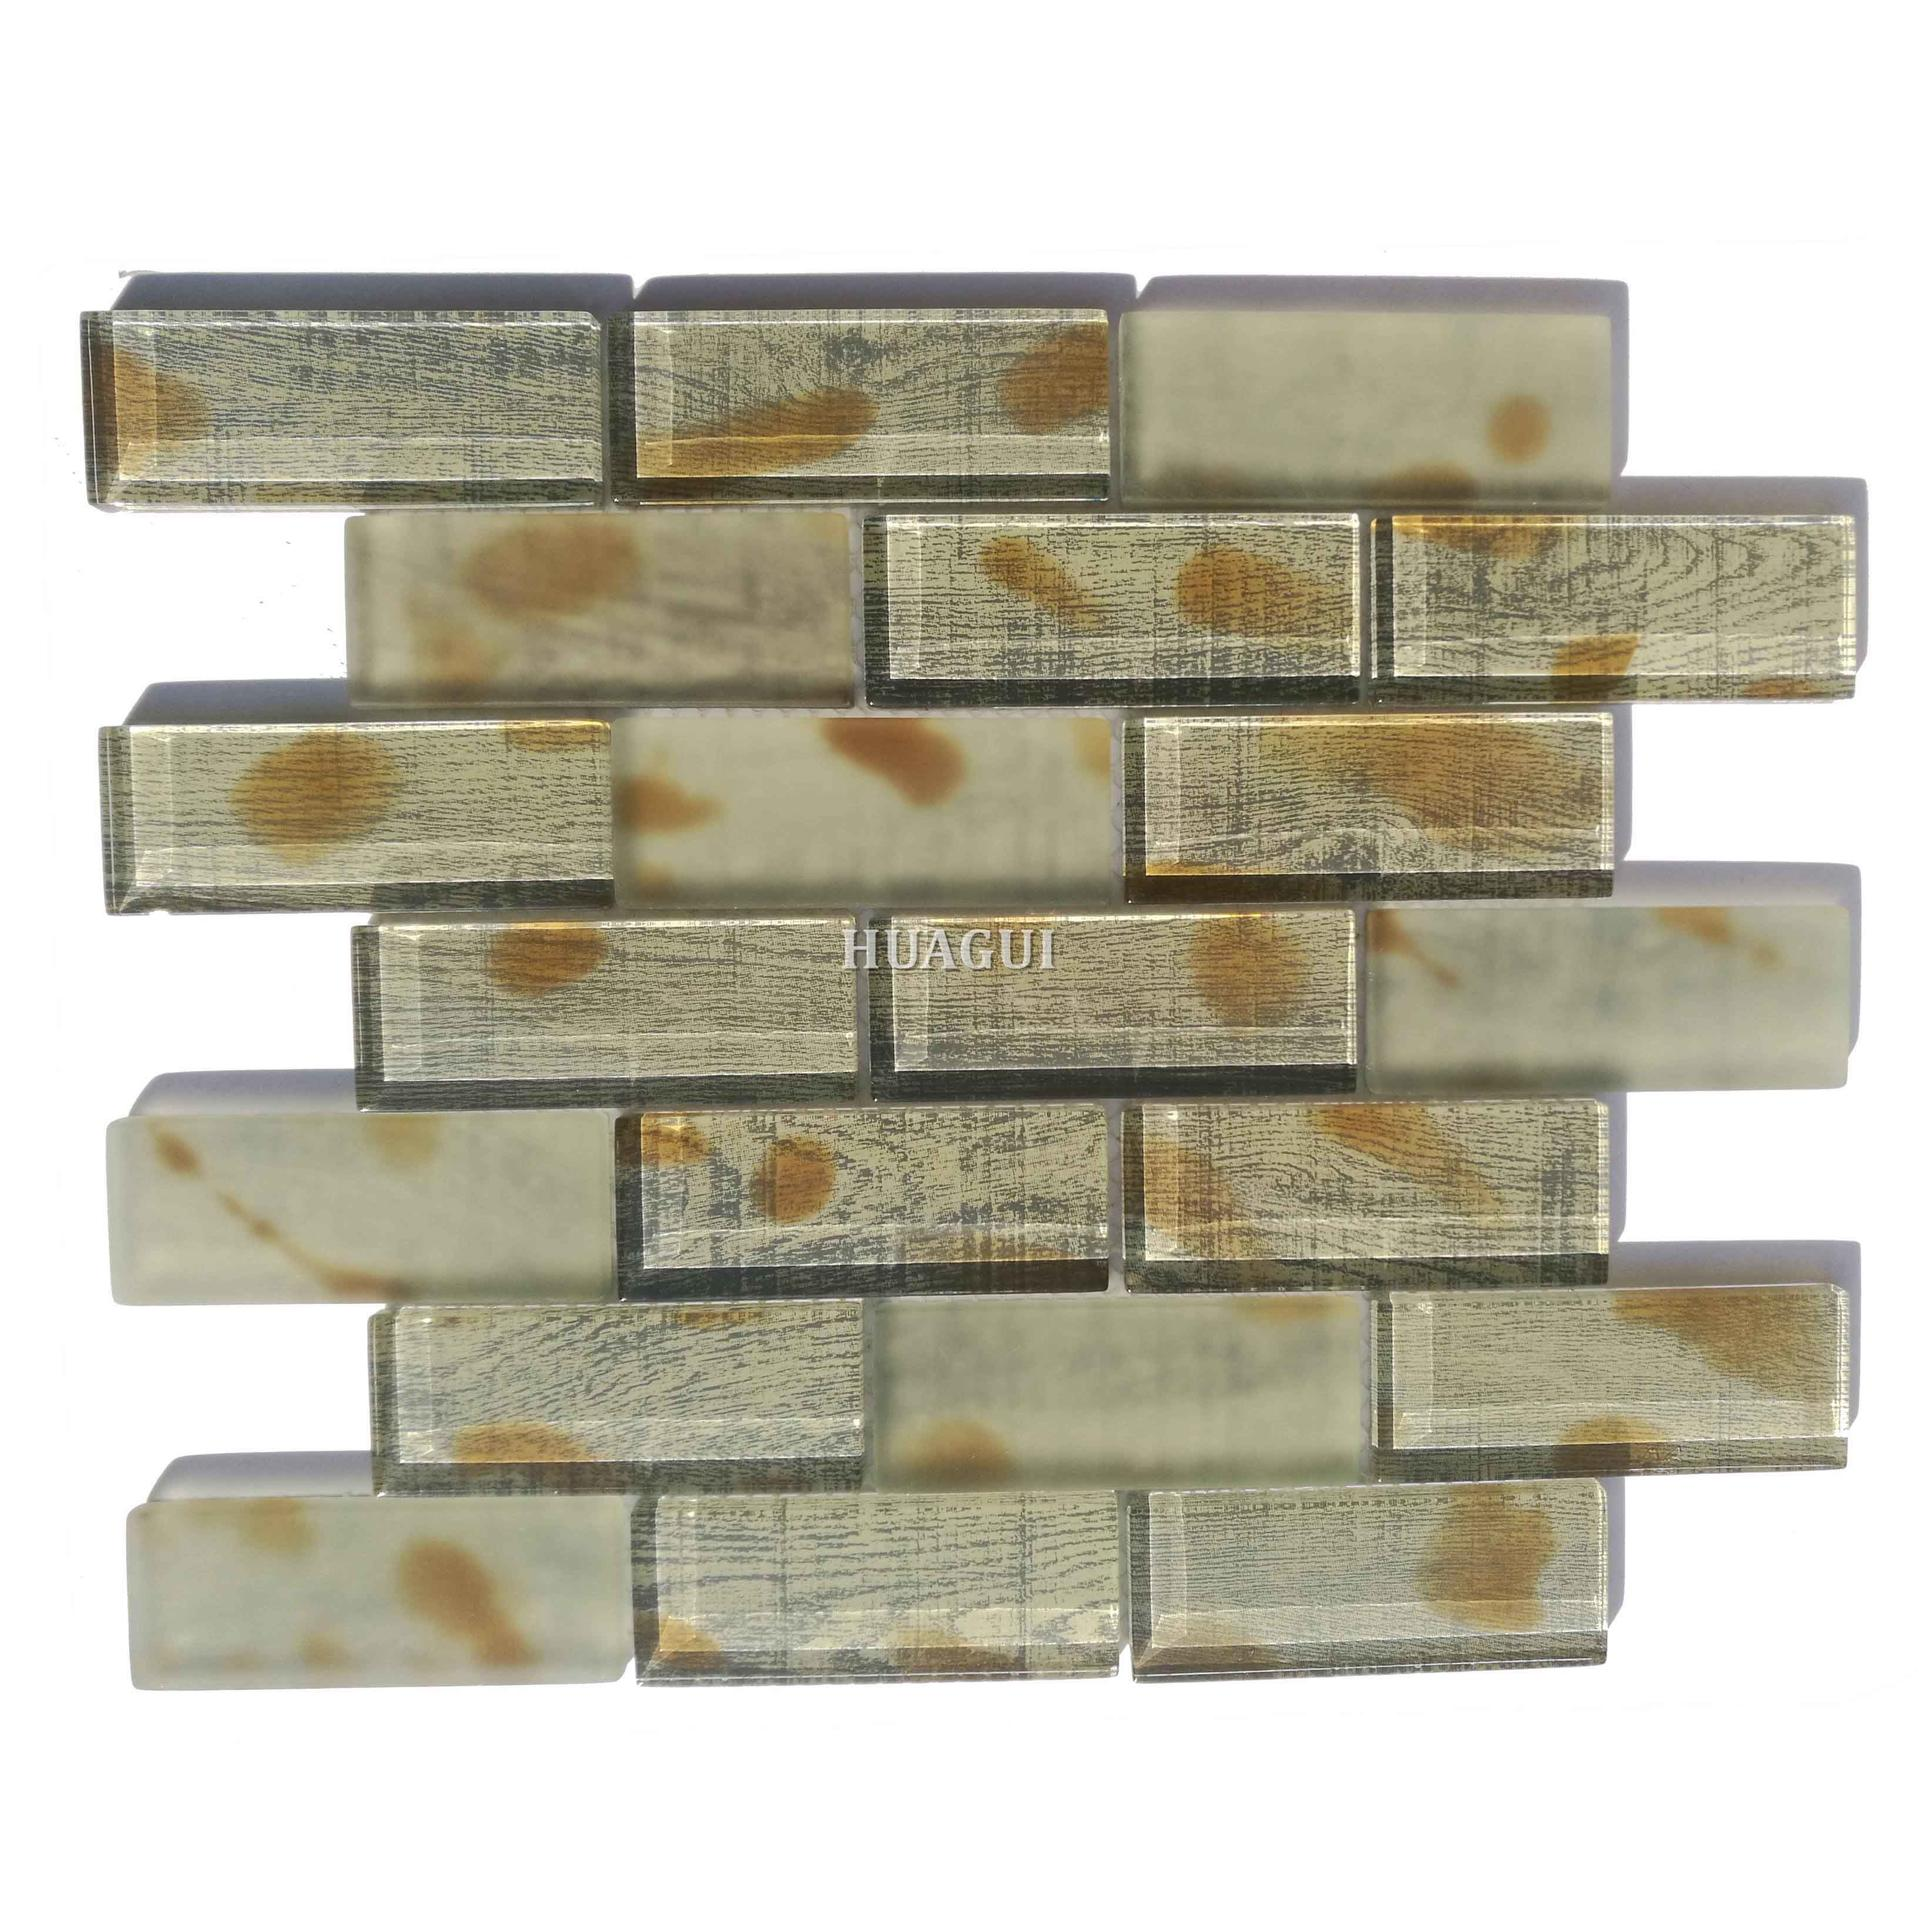 New design pattern 3x6 glass mosaic for the best kitchen backsplash tiles